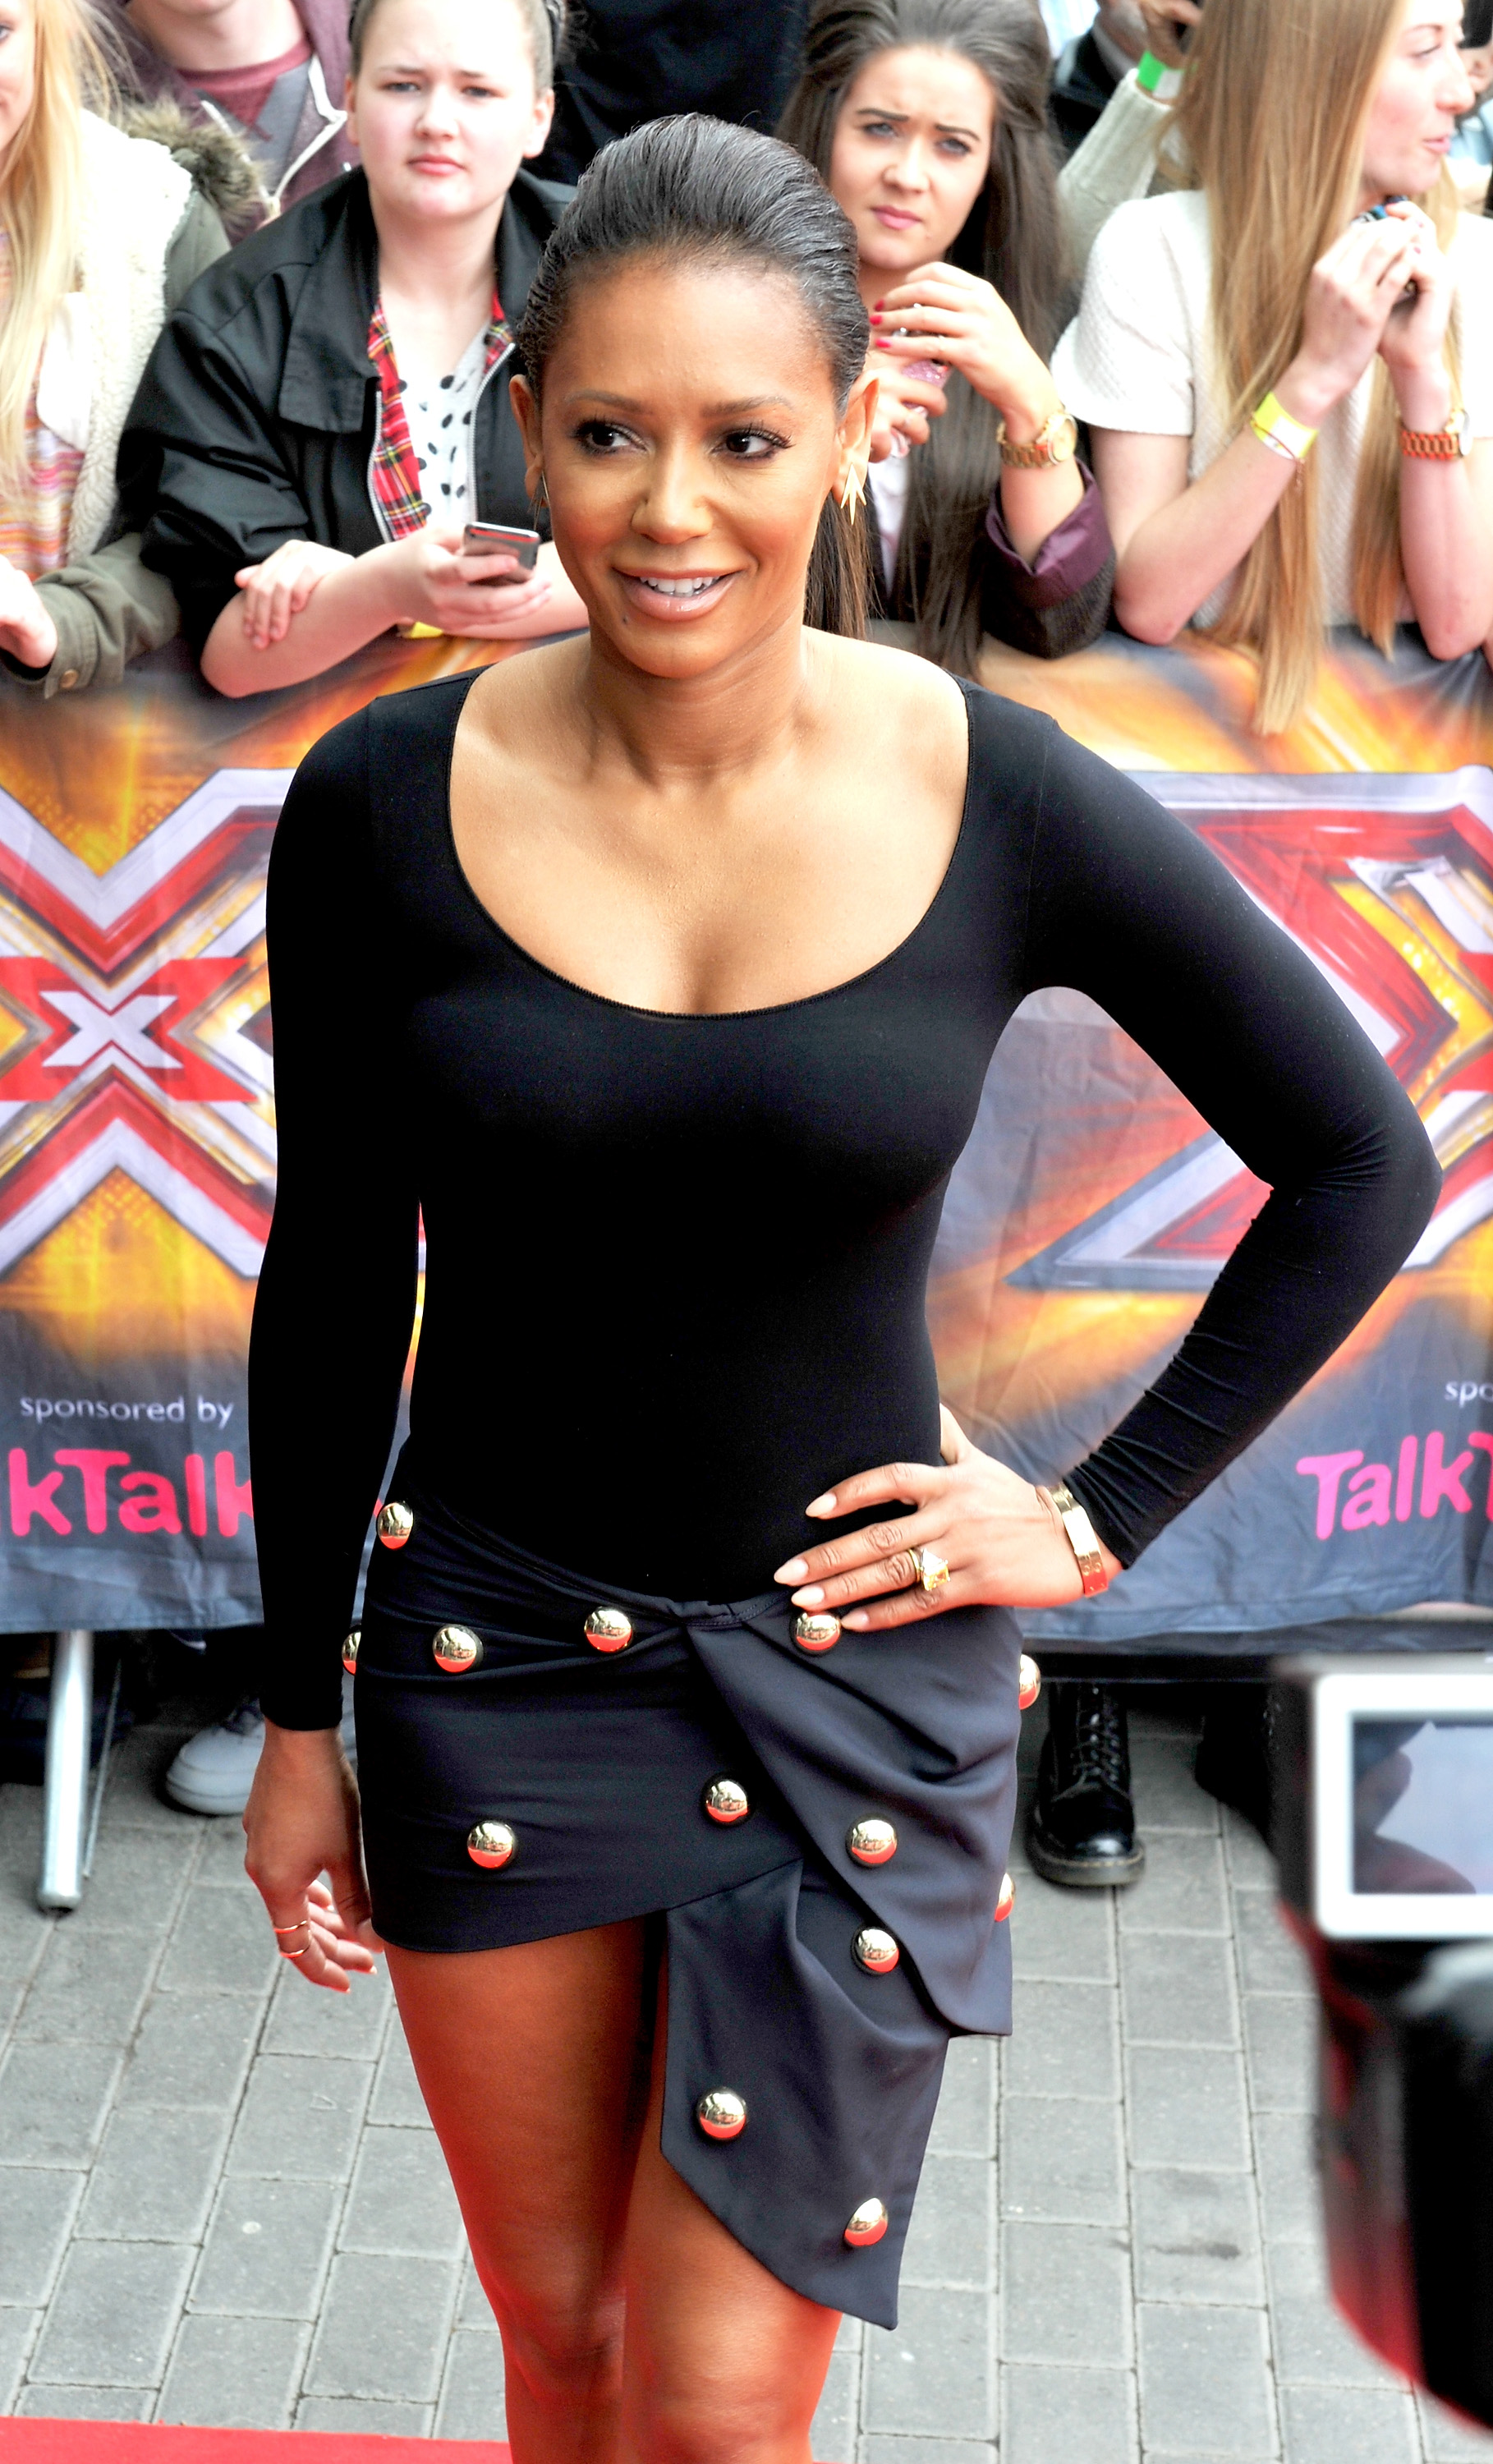 MANCHESTER, ENGLAND - JUNE 16:  Mel B arrives for the Manchester auditions of The X Factor at Lancashire County Cricket Club on June 16, 2014 in Manchester, England.  (Photo by Shirlaine Forrest/Getty Images)